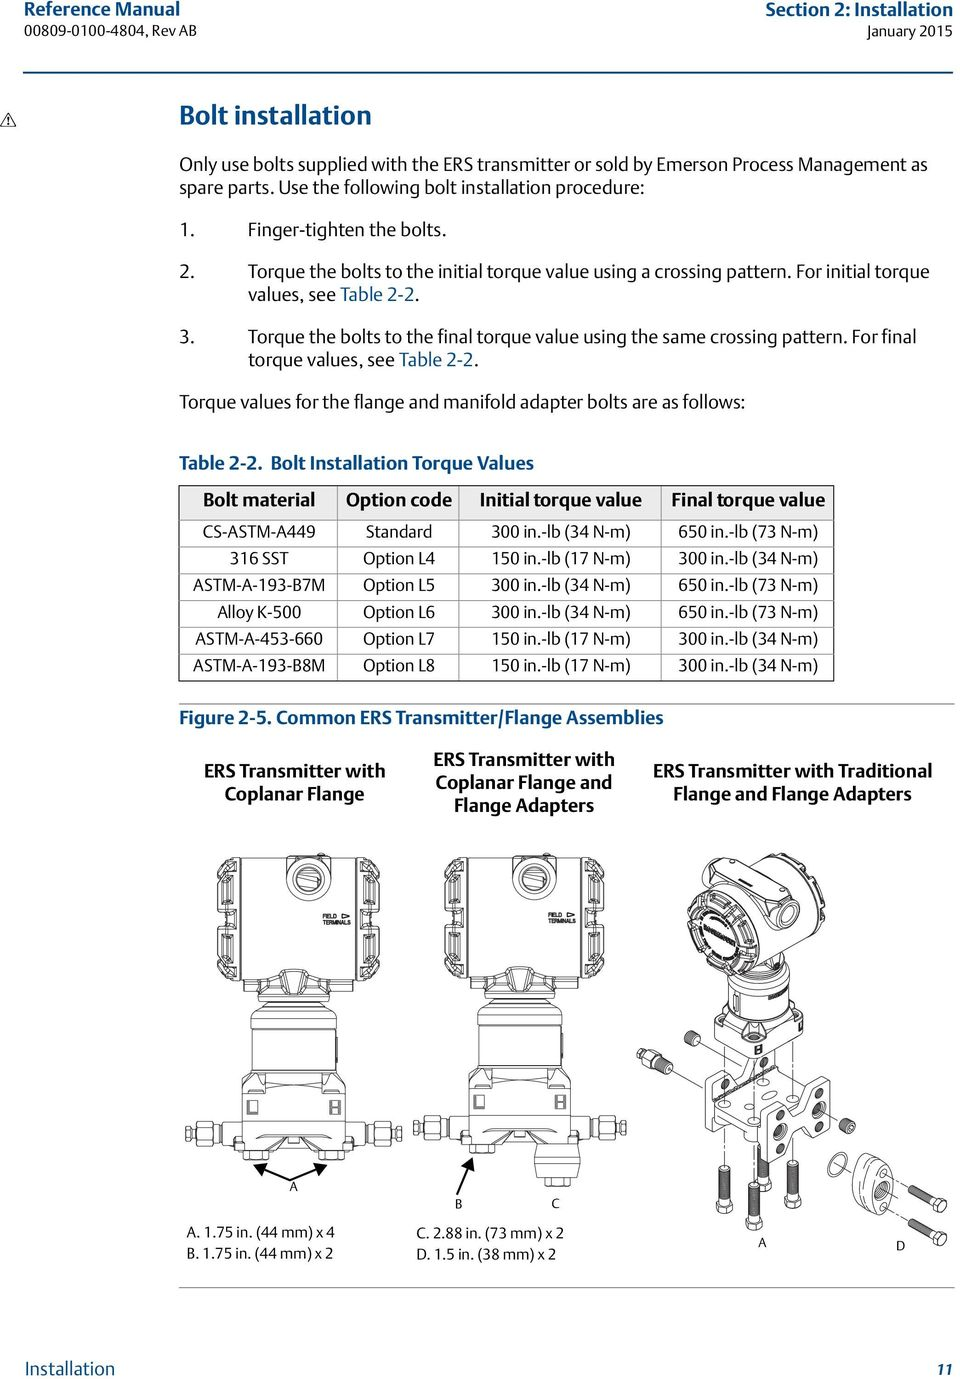 Torque the bolts to the final torque value using the same crossing pattern. For final torque values, see Table 2-2. Torque values for the flange and manifold adapter bolts are as follows: Table 2-2.